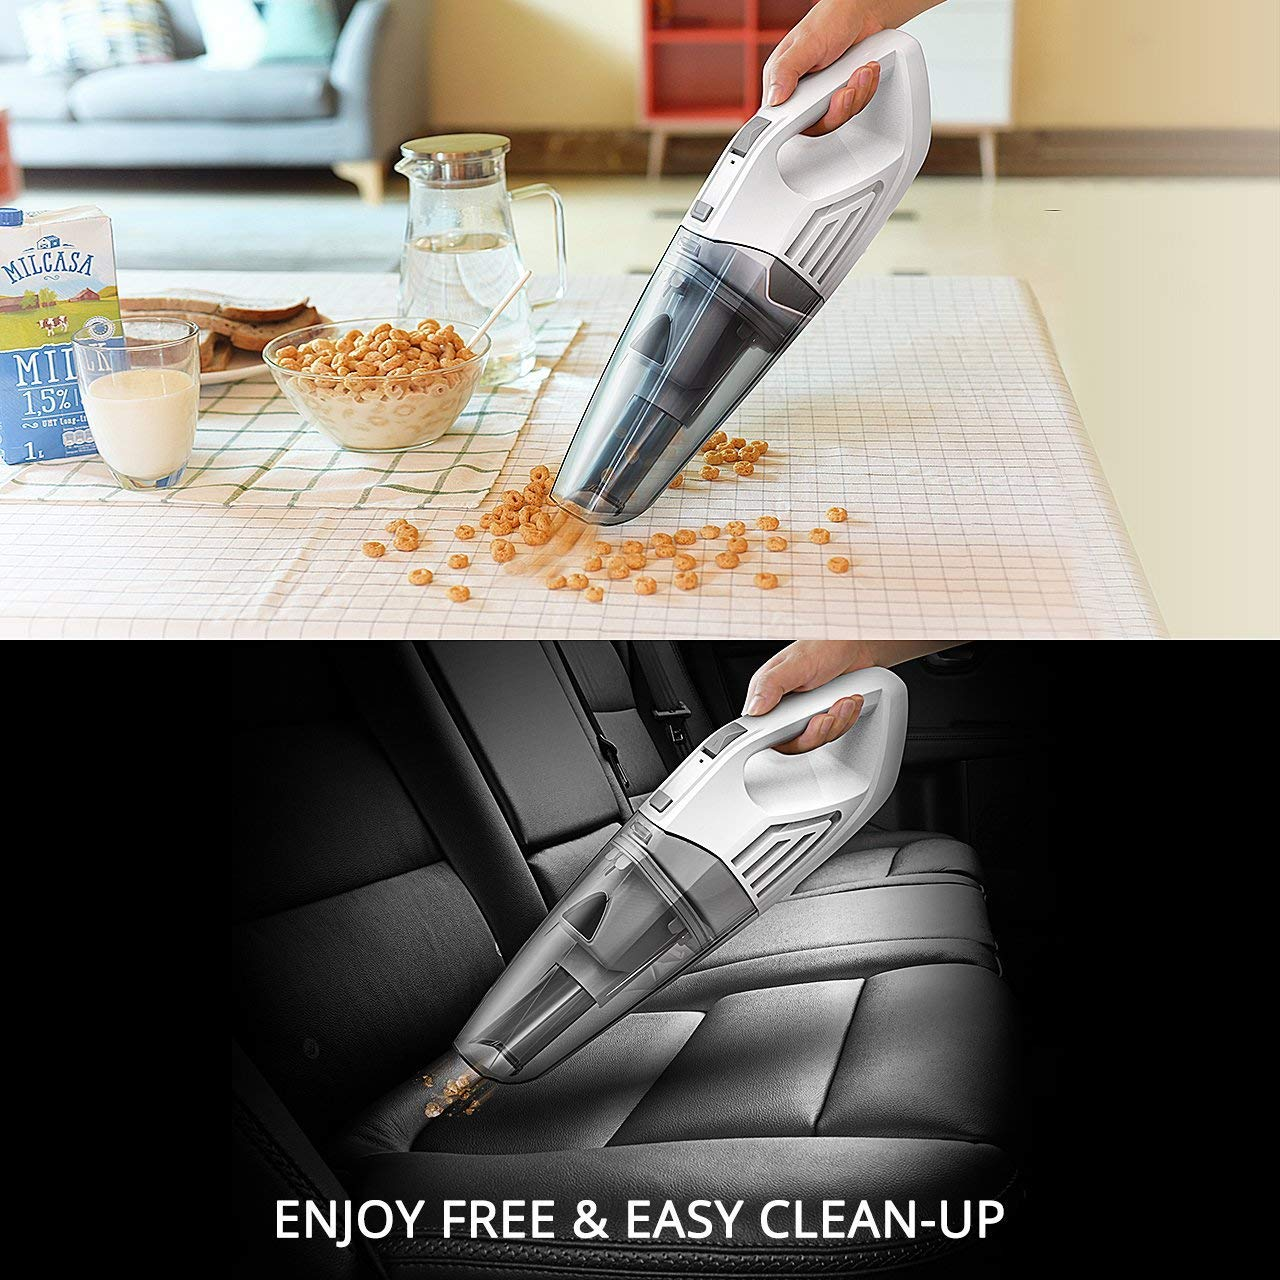 22.2V Hand Held Car Vac Rechargeable Battery Cordless Vacuum for Wet//Dry//Home//Car Use Holife Handheld Vacuum Cleaner Cordless